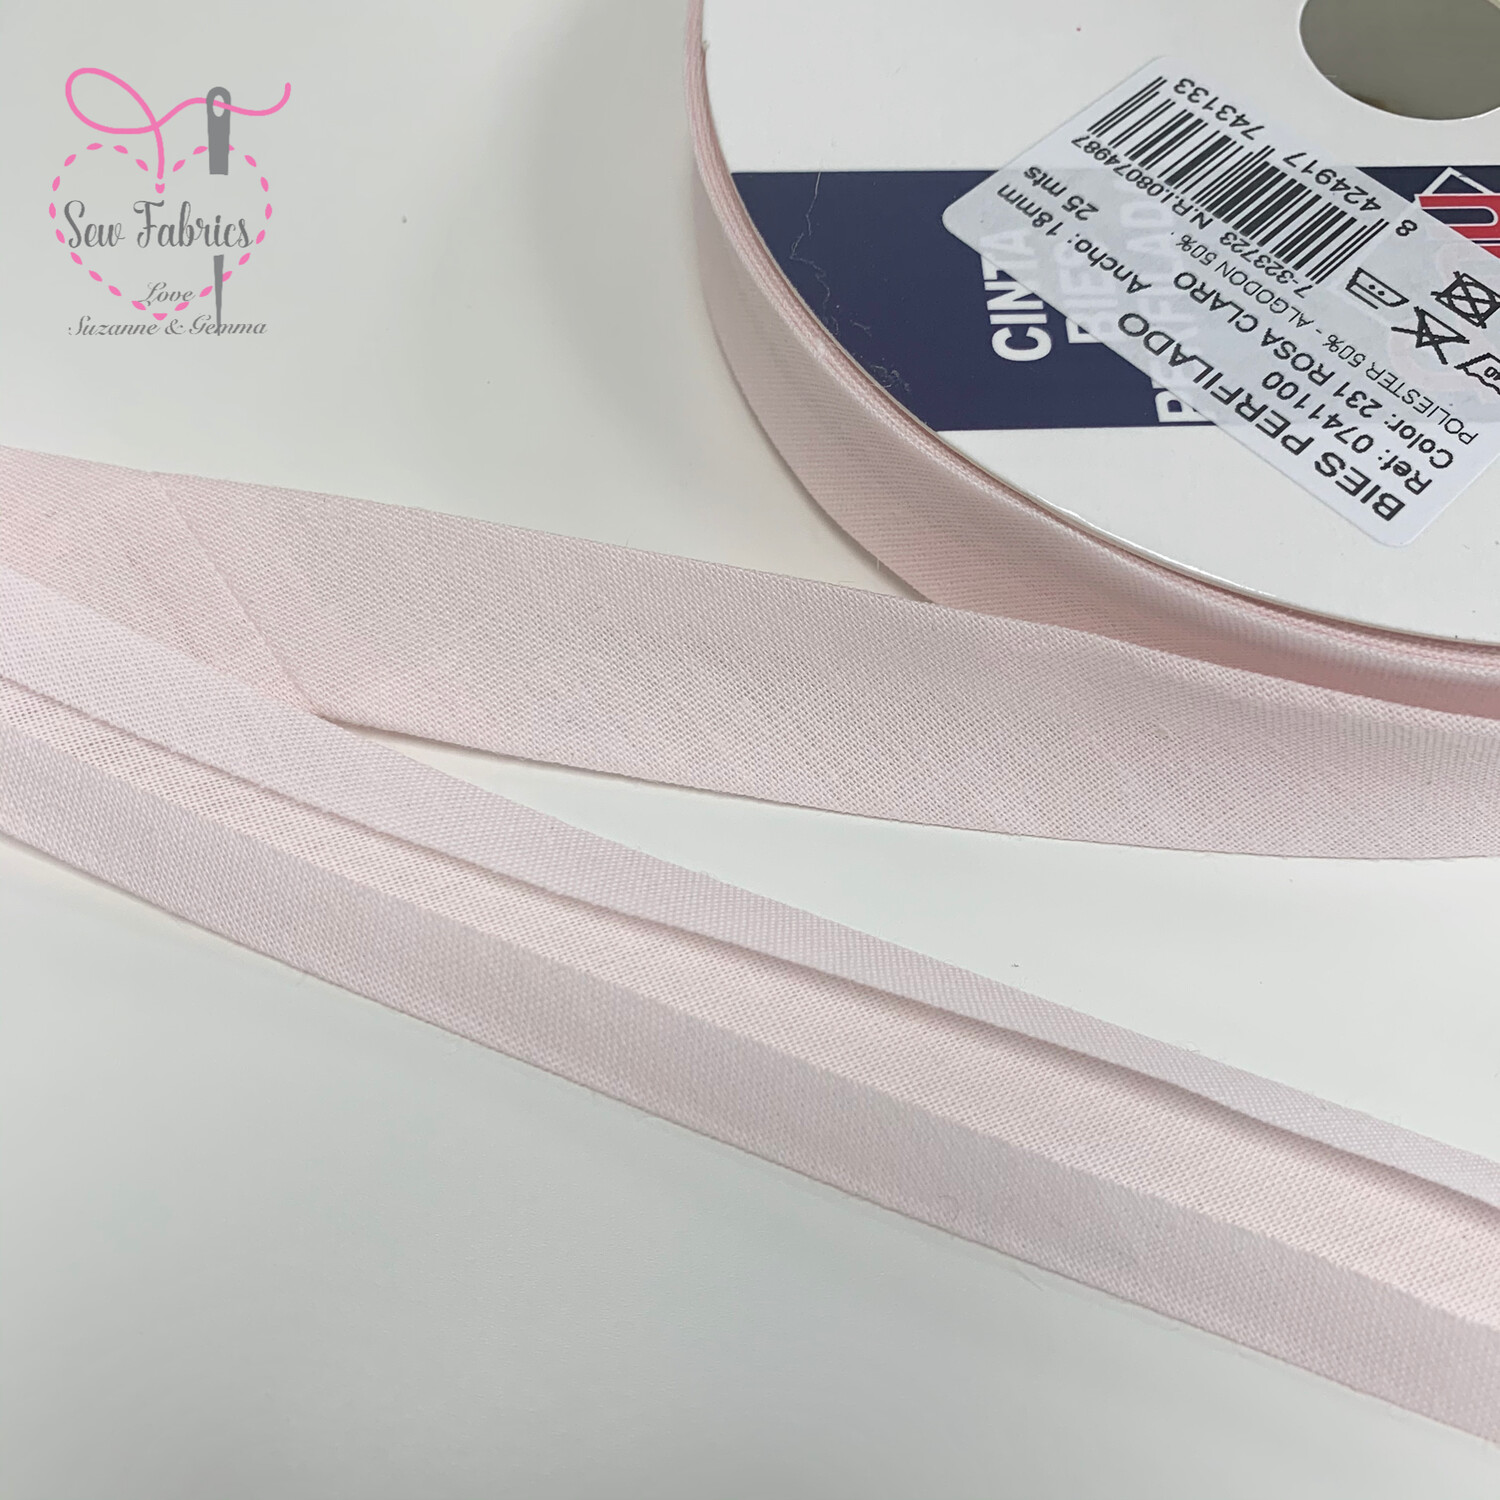 18mm Pink Azalea Plain Bias Polycotton Bias Binding x 25mts Reel